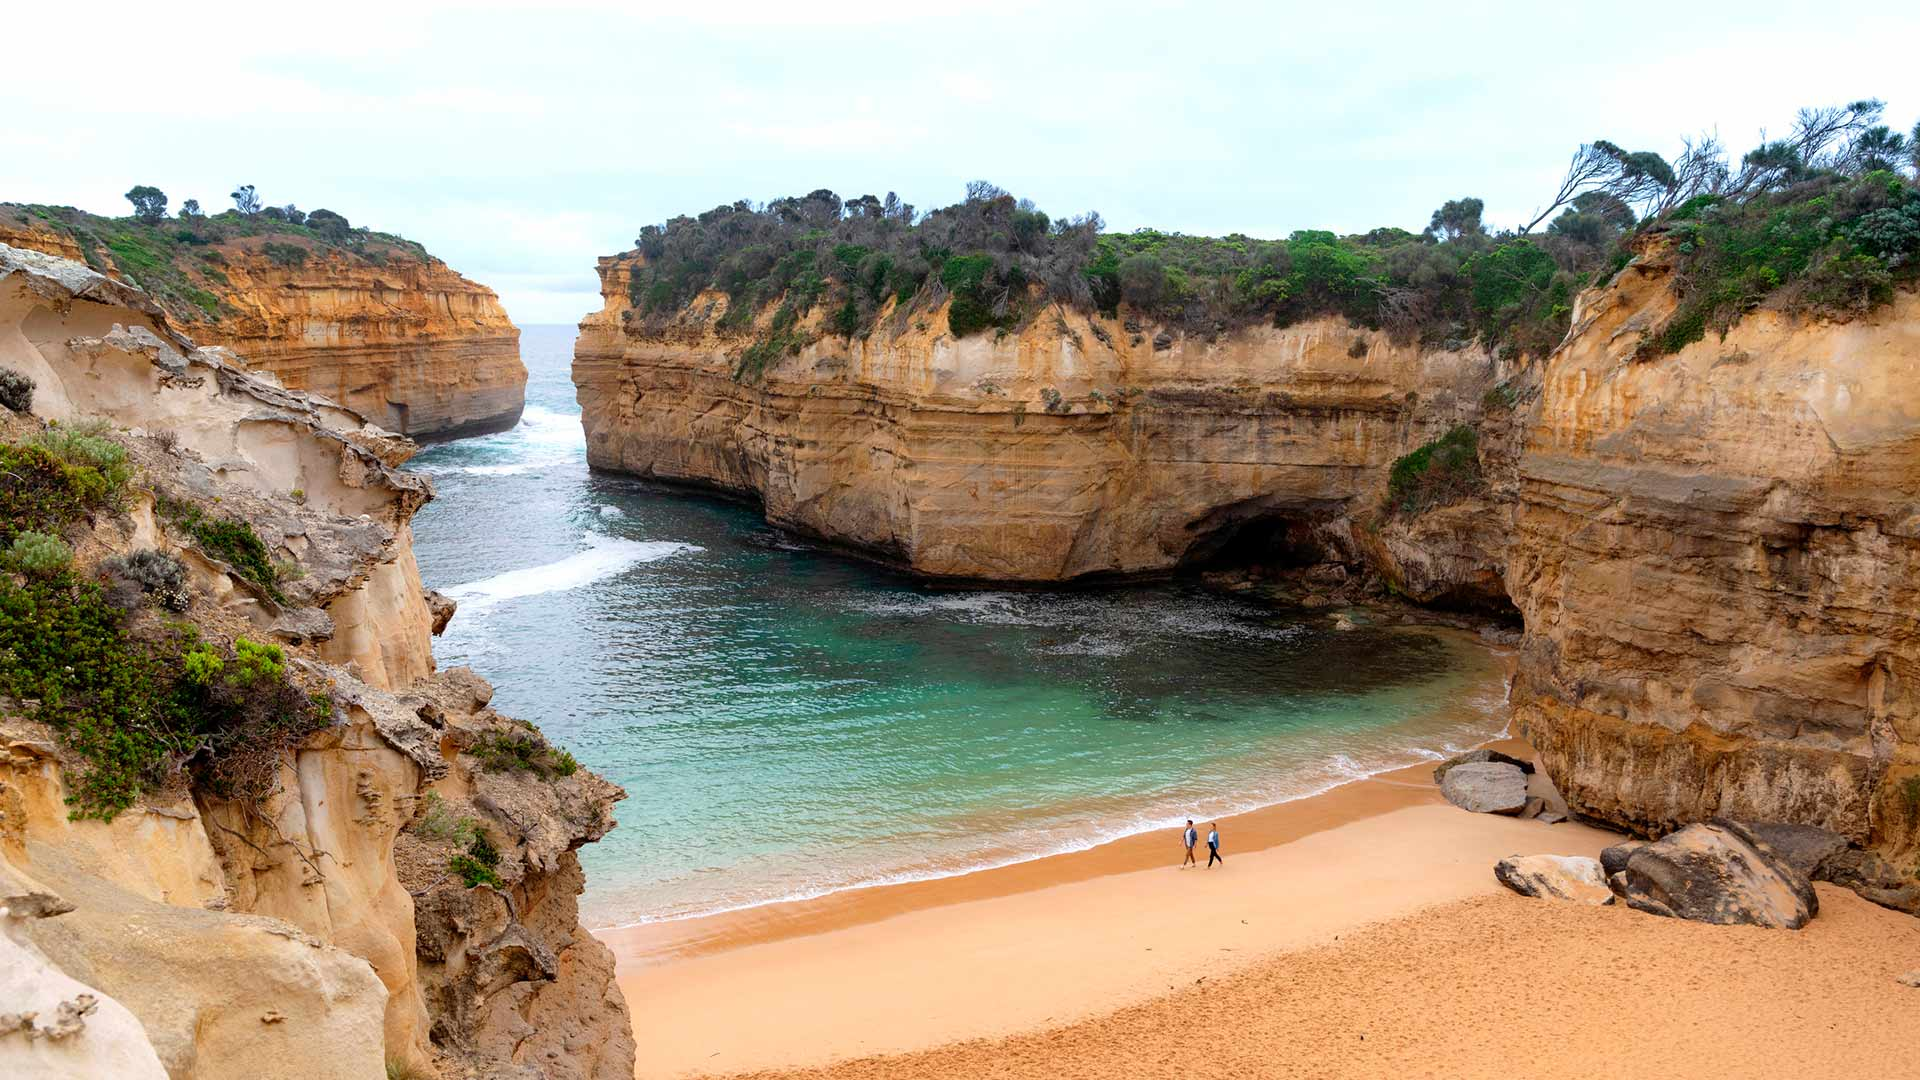 Seven Lesser-Known Stops to Make on a Road Trip Down the Great Ocean Road